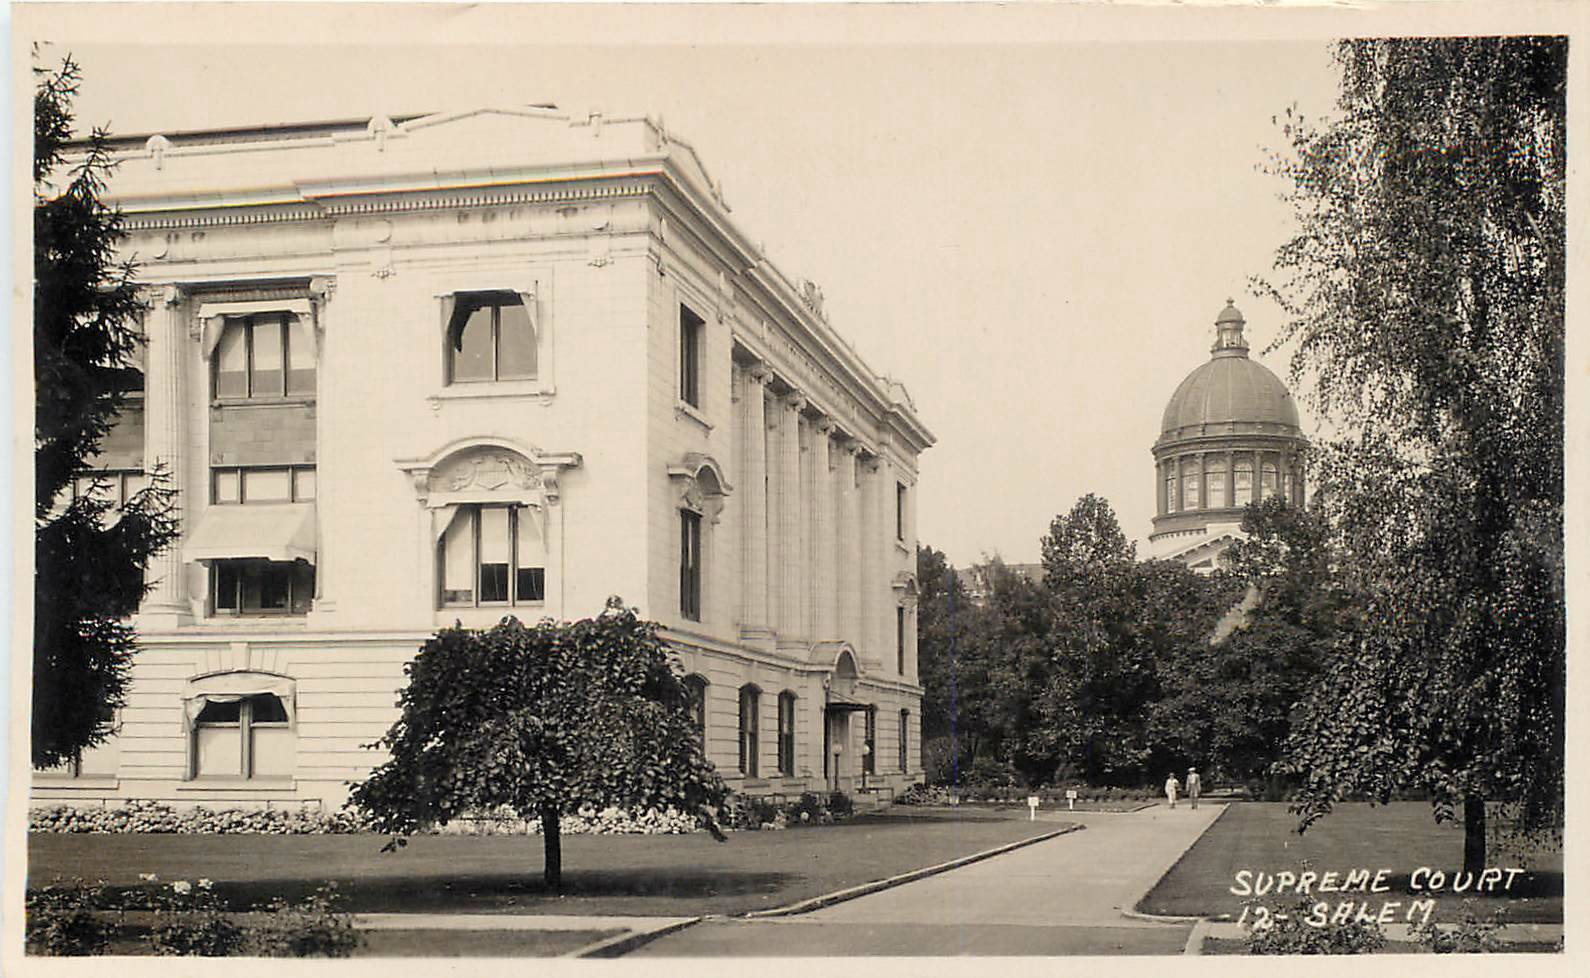 Picture postcard of the Oregon Supreme Court building.